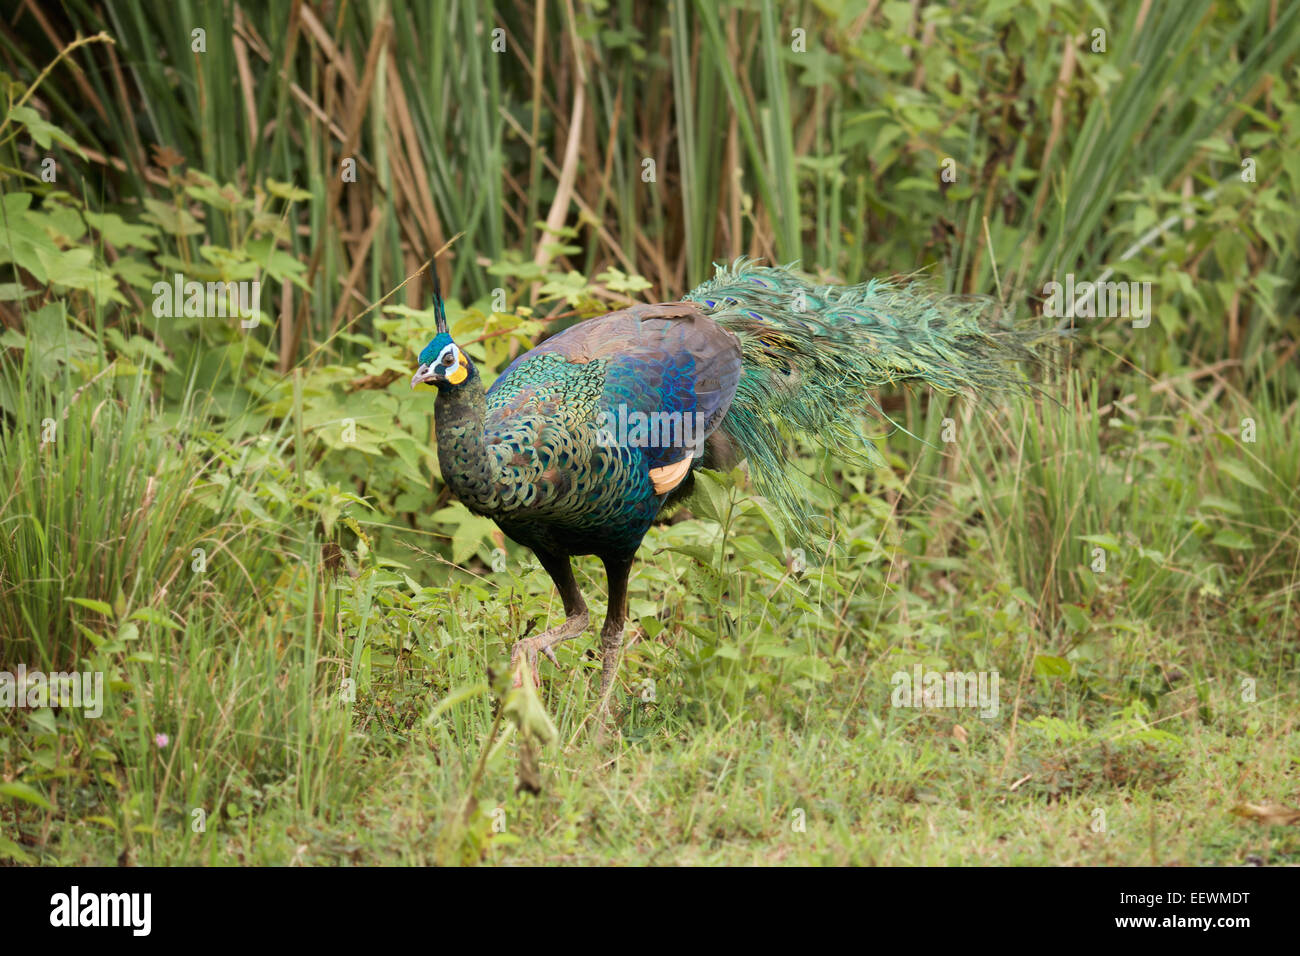 The green peafowl (Pavo muticus) (from Latin Pavo, peafowl; muticus, Mute, docked or curtailed)is a large galliform - Stock Image